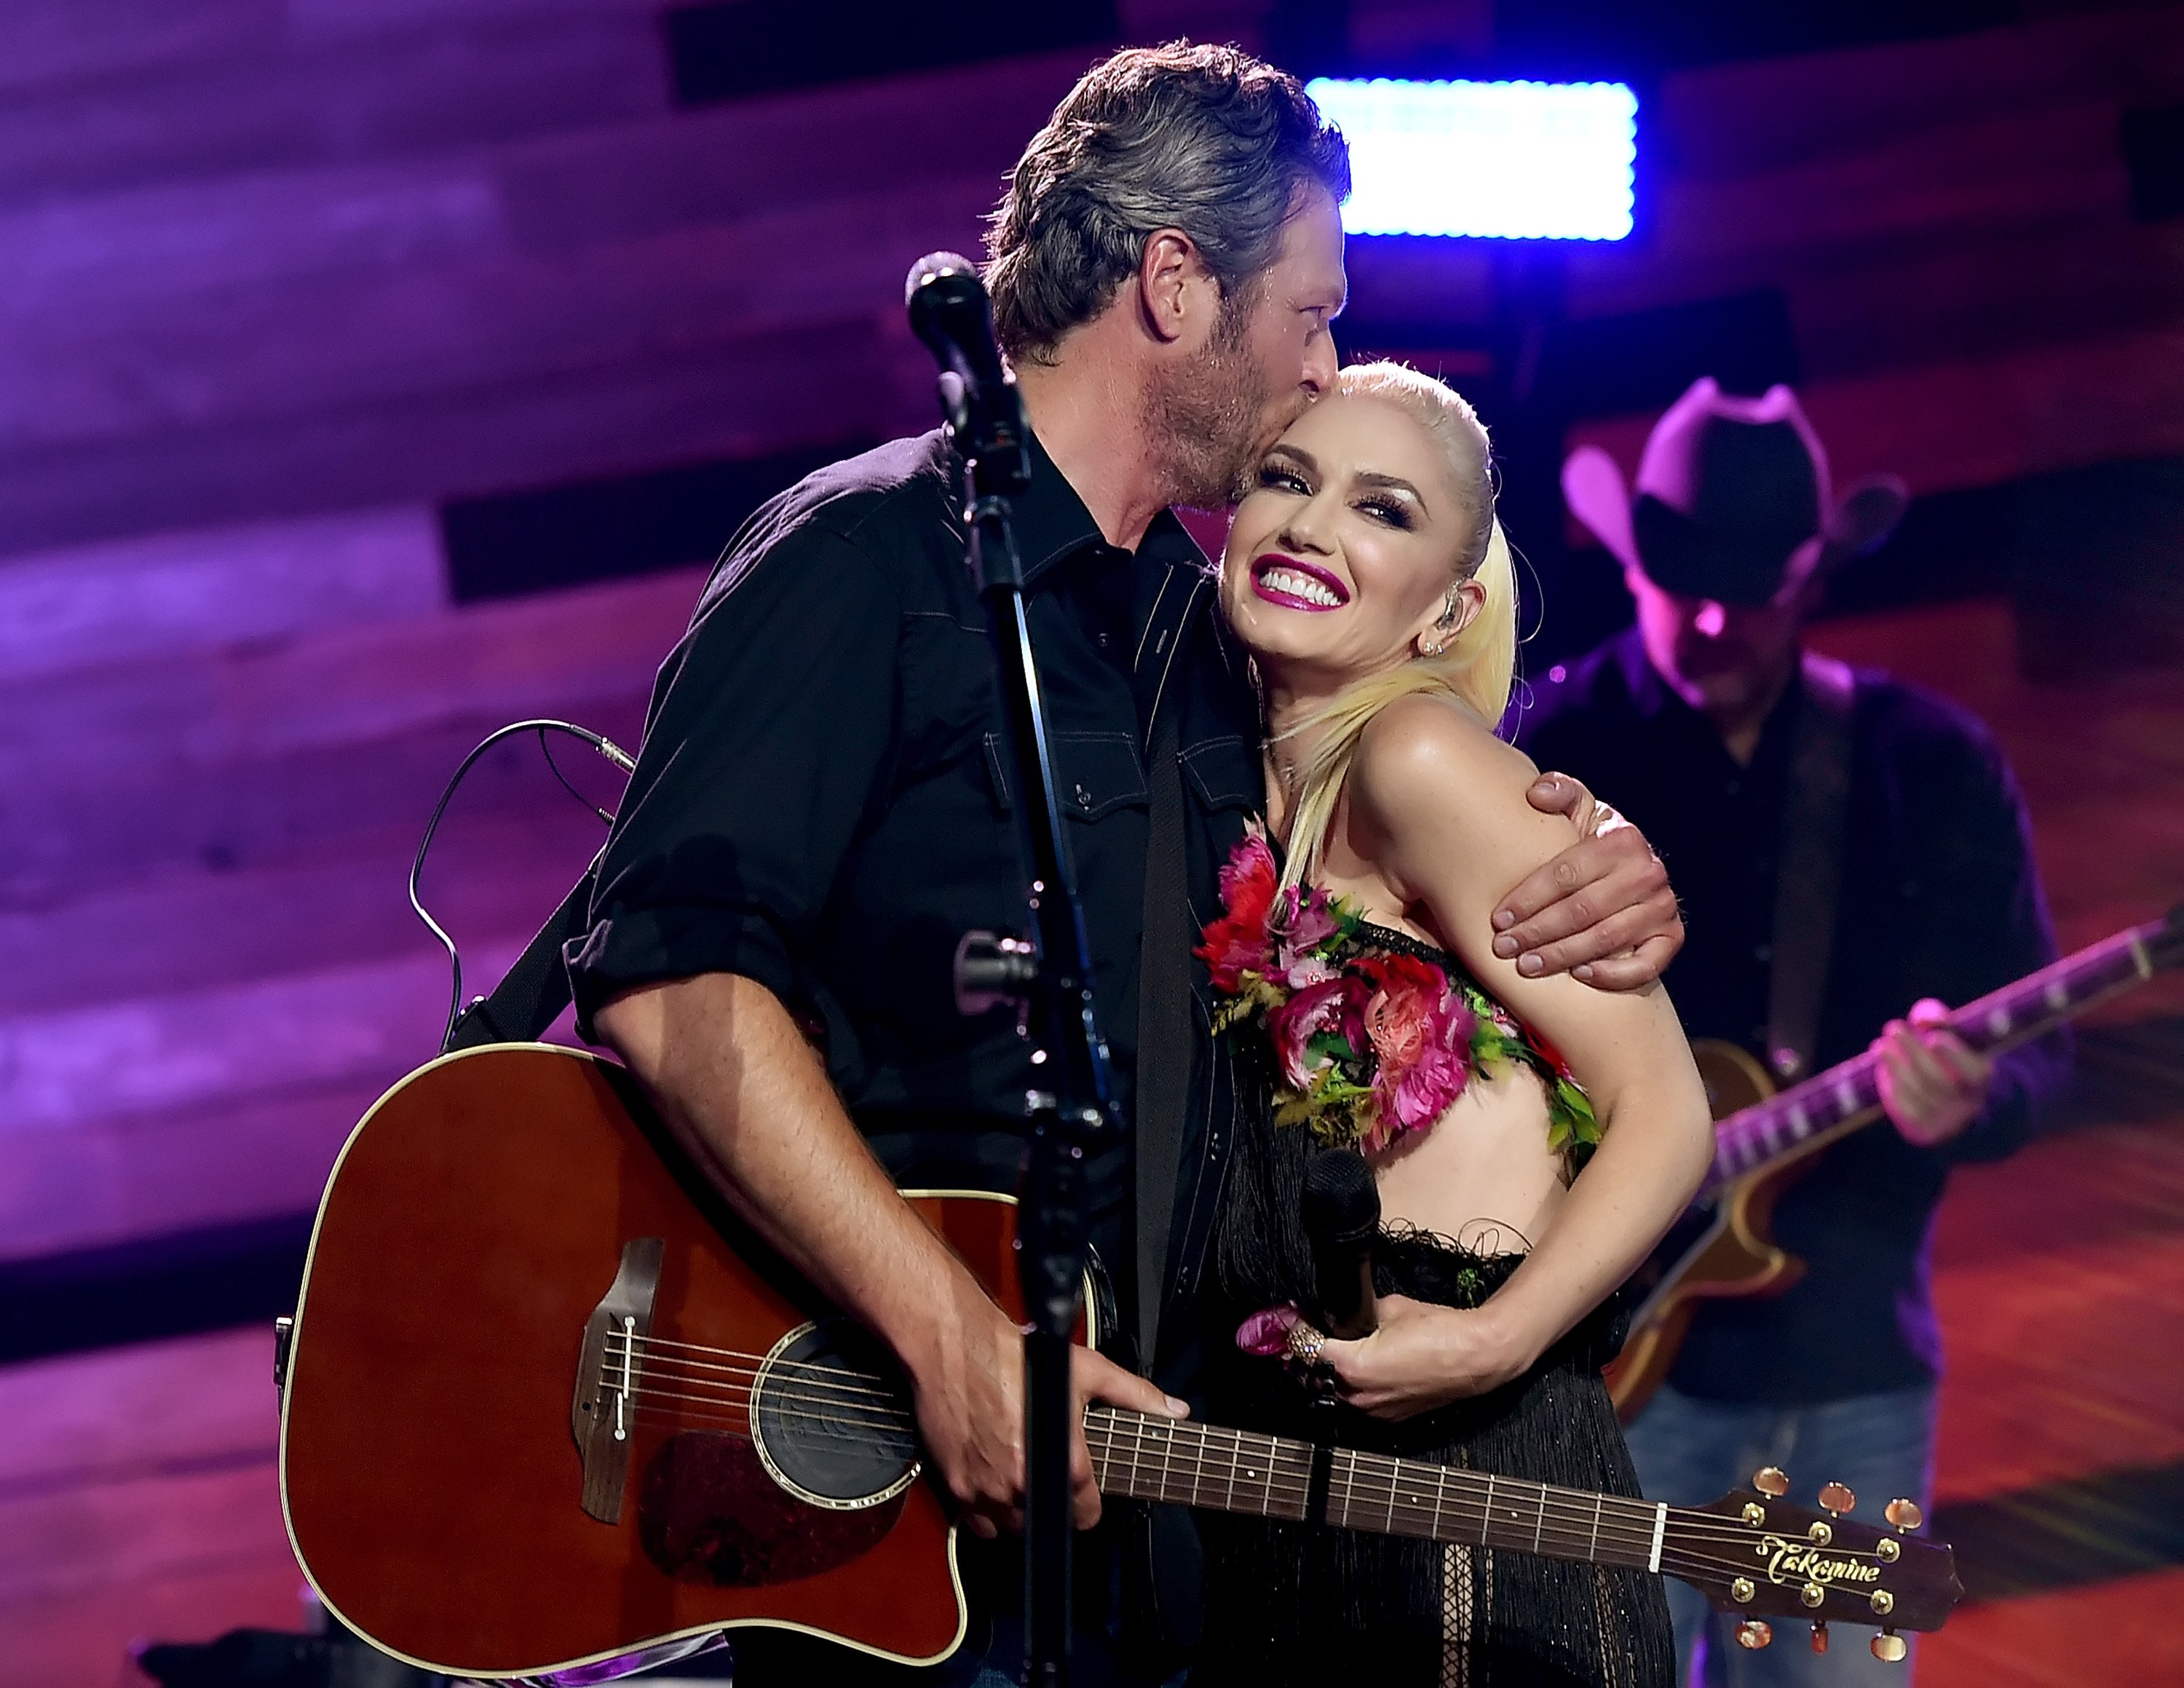 Blake Shelton and Gwen Stefani performing on the Honda Stage at the iHeartRadio Theater, 2016, Burbank, California. | Photo: Getty Images